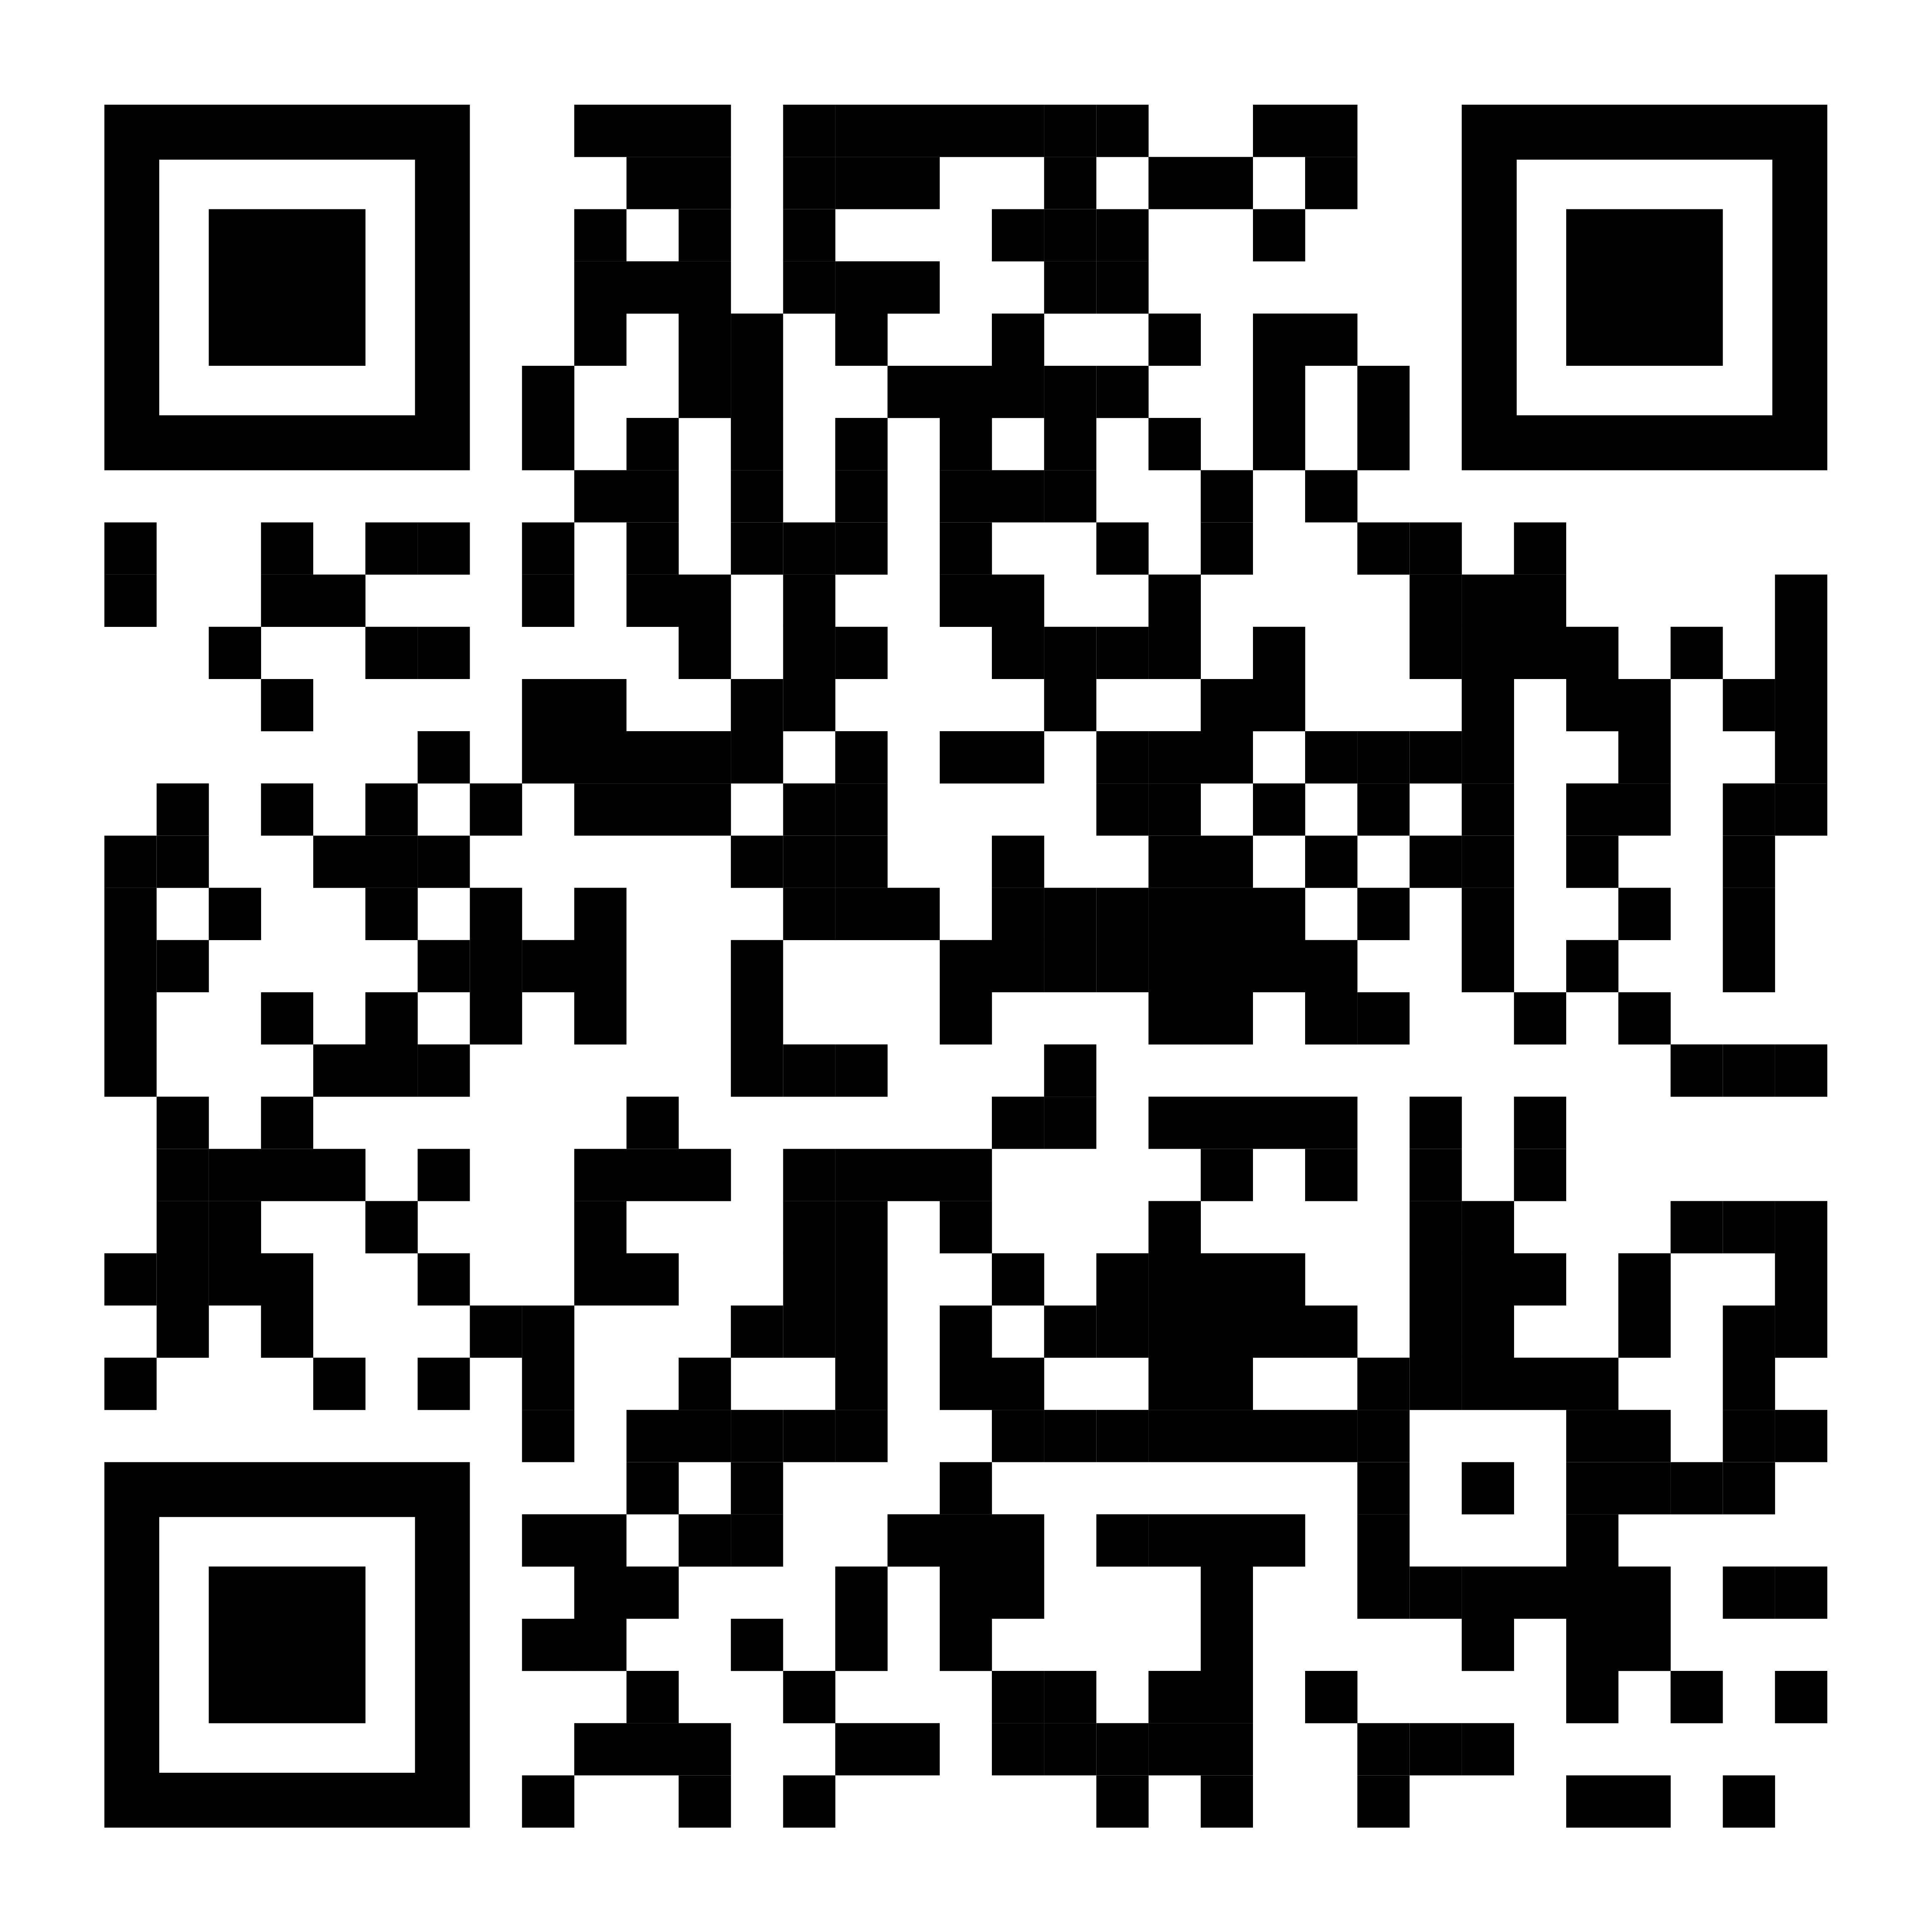 Download mit CR-Code: Google Play Store - SafeVac 2.0 App